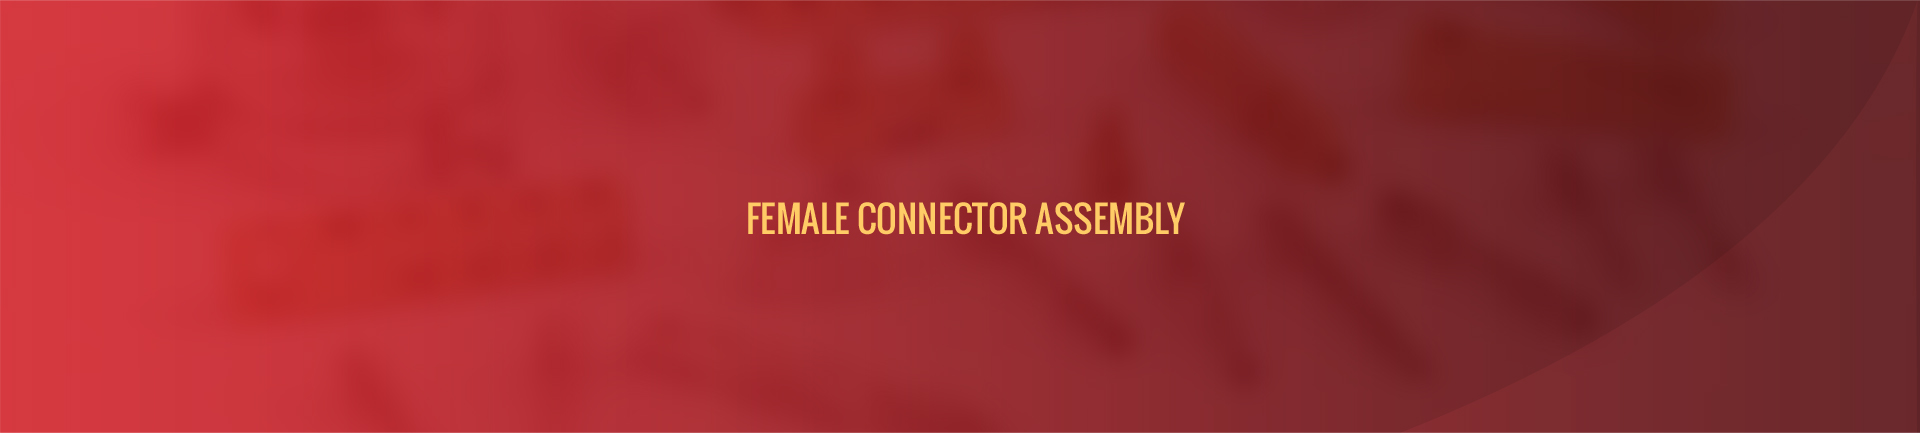 female_connector_assembly-banner